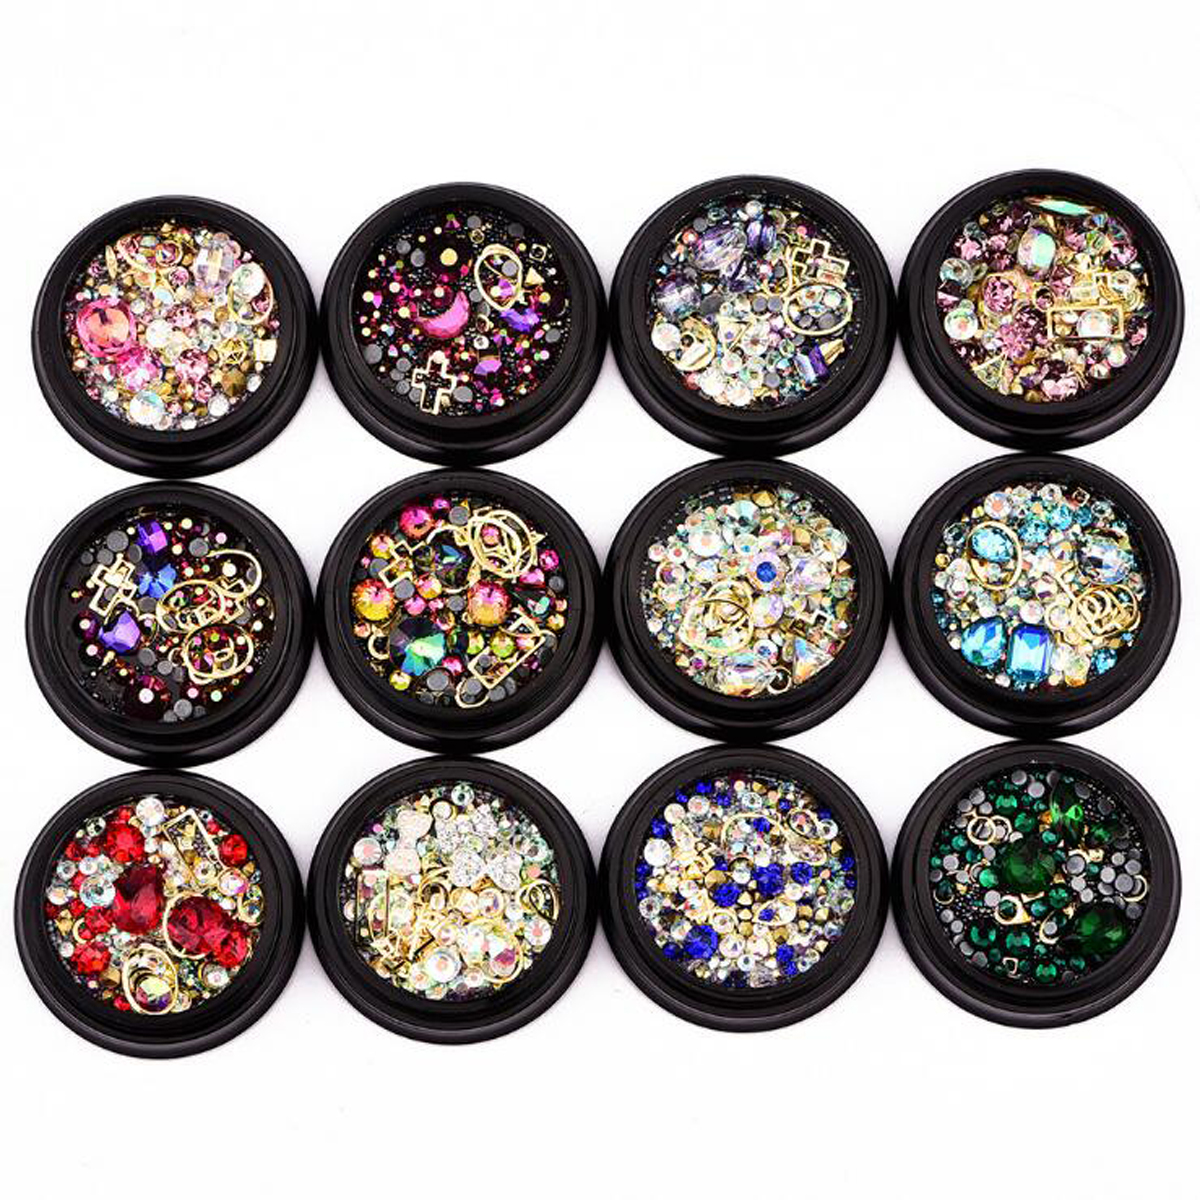 1box Plastic Nail Art Jewelry 4cm Black Boxed Colorful Diamond Manicure Accessories Inlaid Nail Beauty Tool 12 Type To Choose